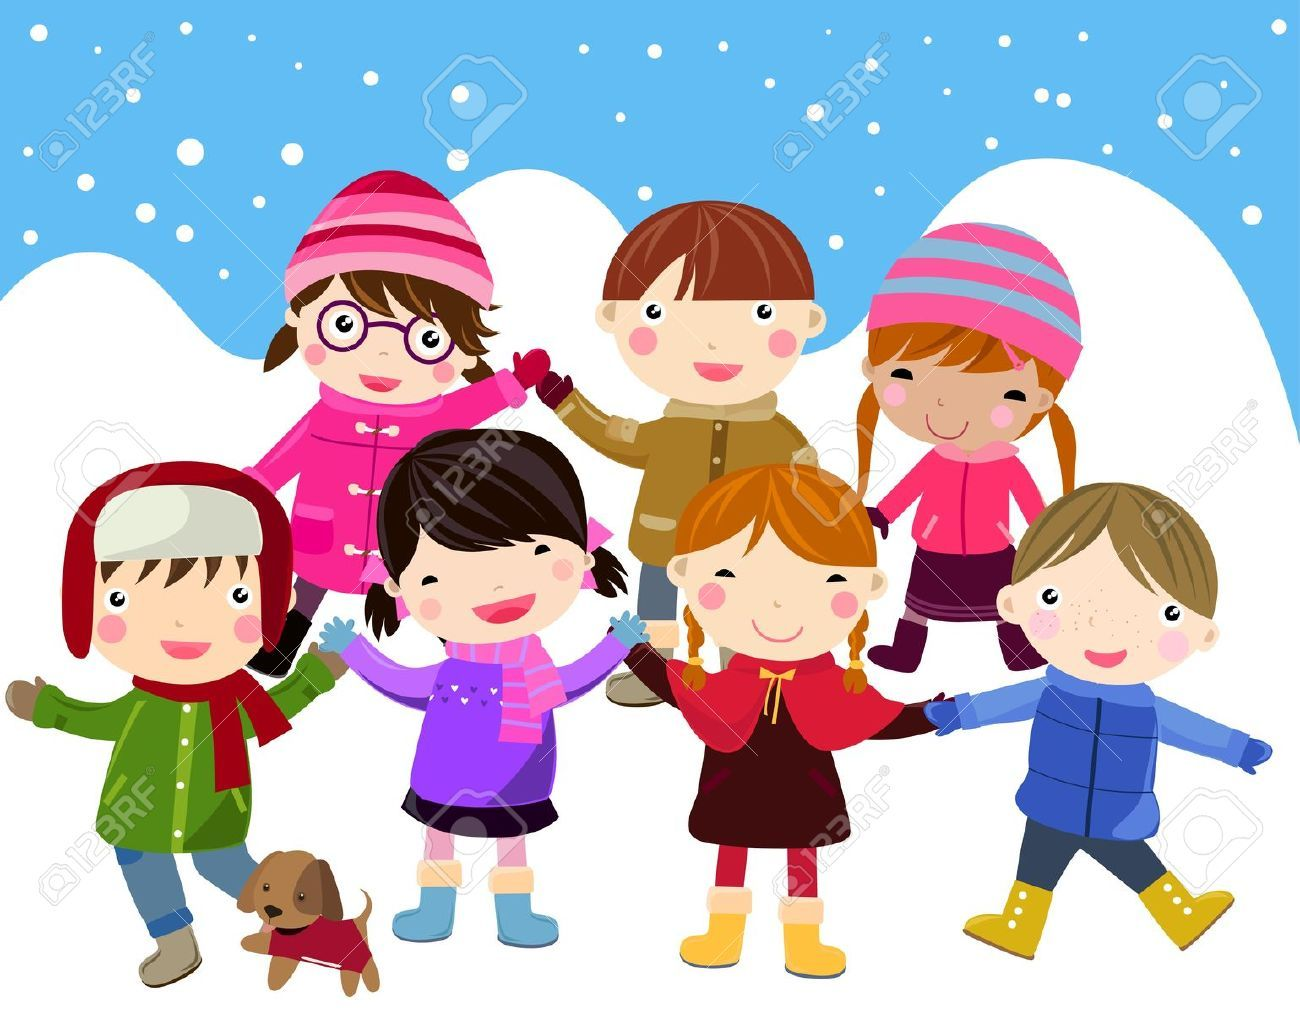 Winter clipart for kids 1 » Clipart Portal.